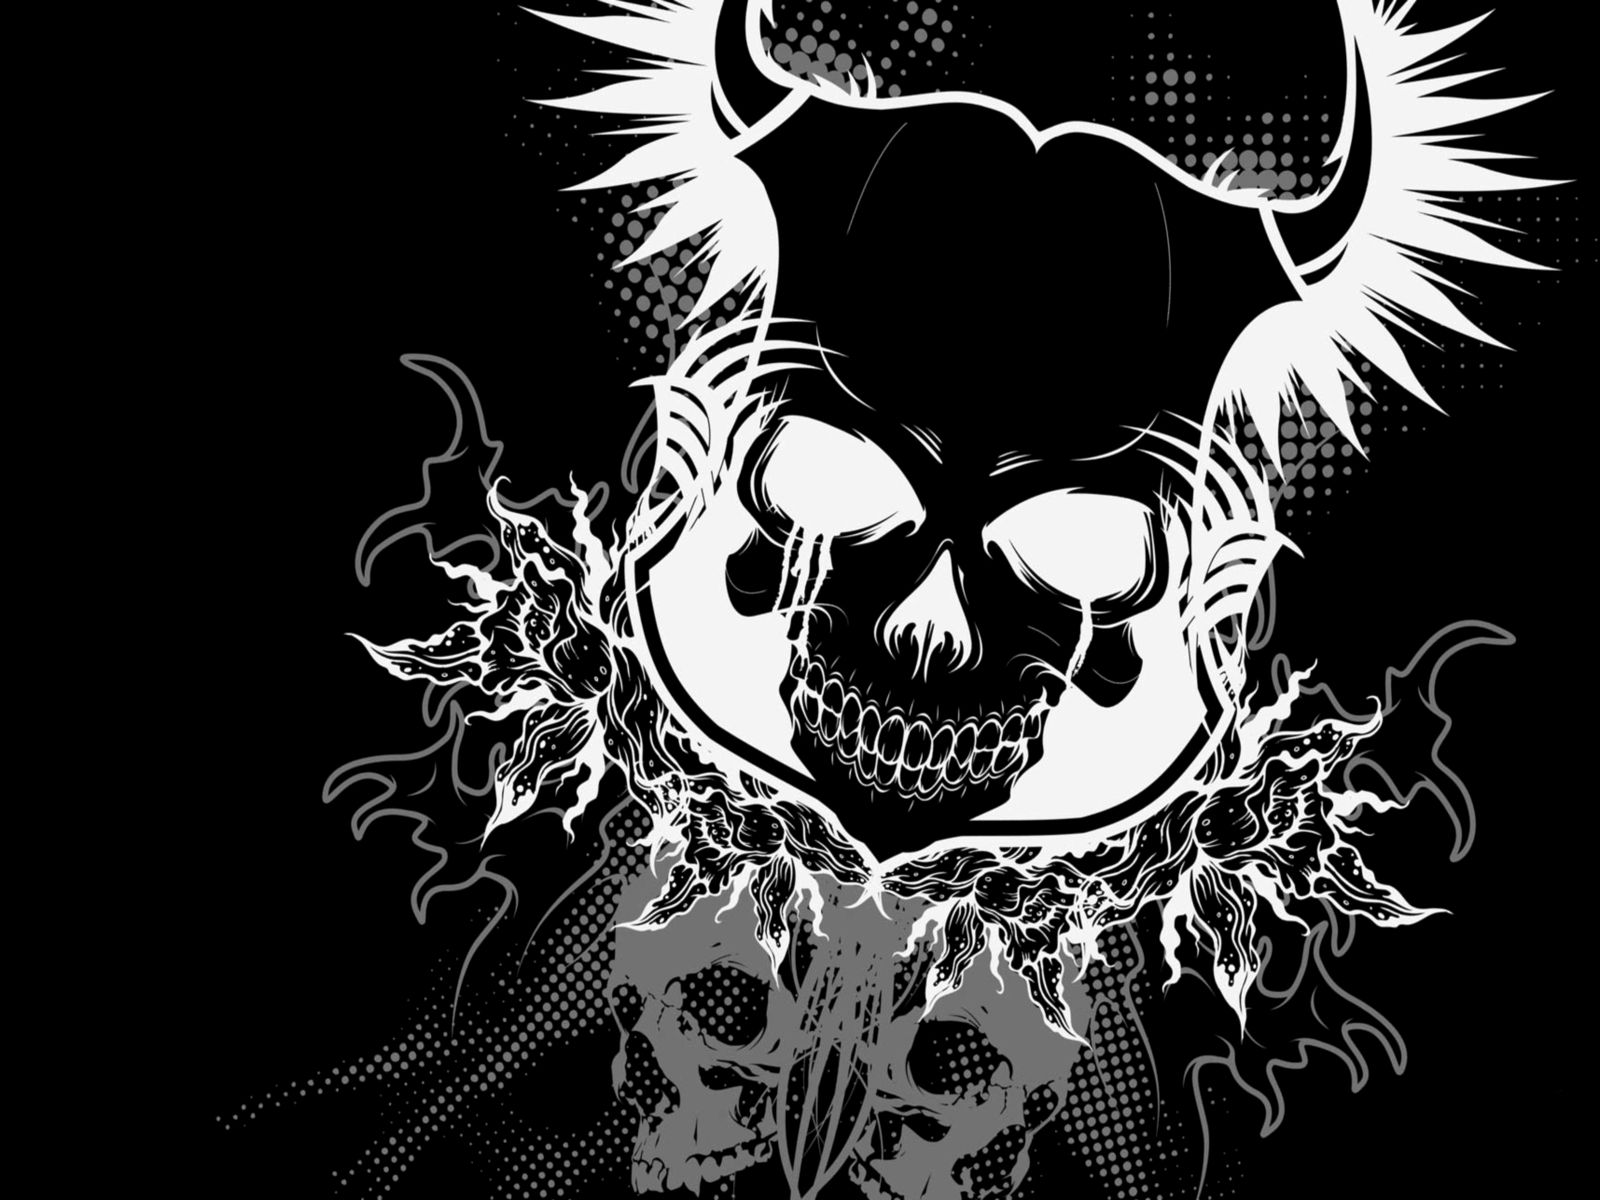 [47+] Cool Wallpaper of Skull on WallpaperSafari